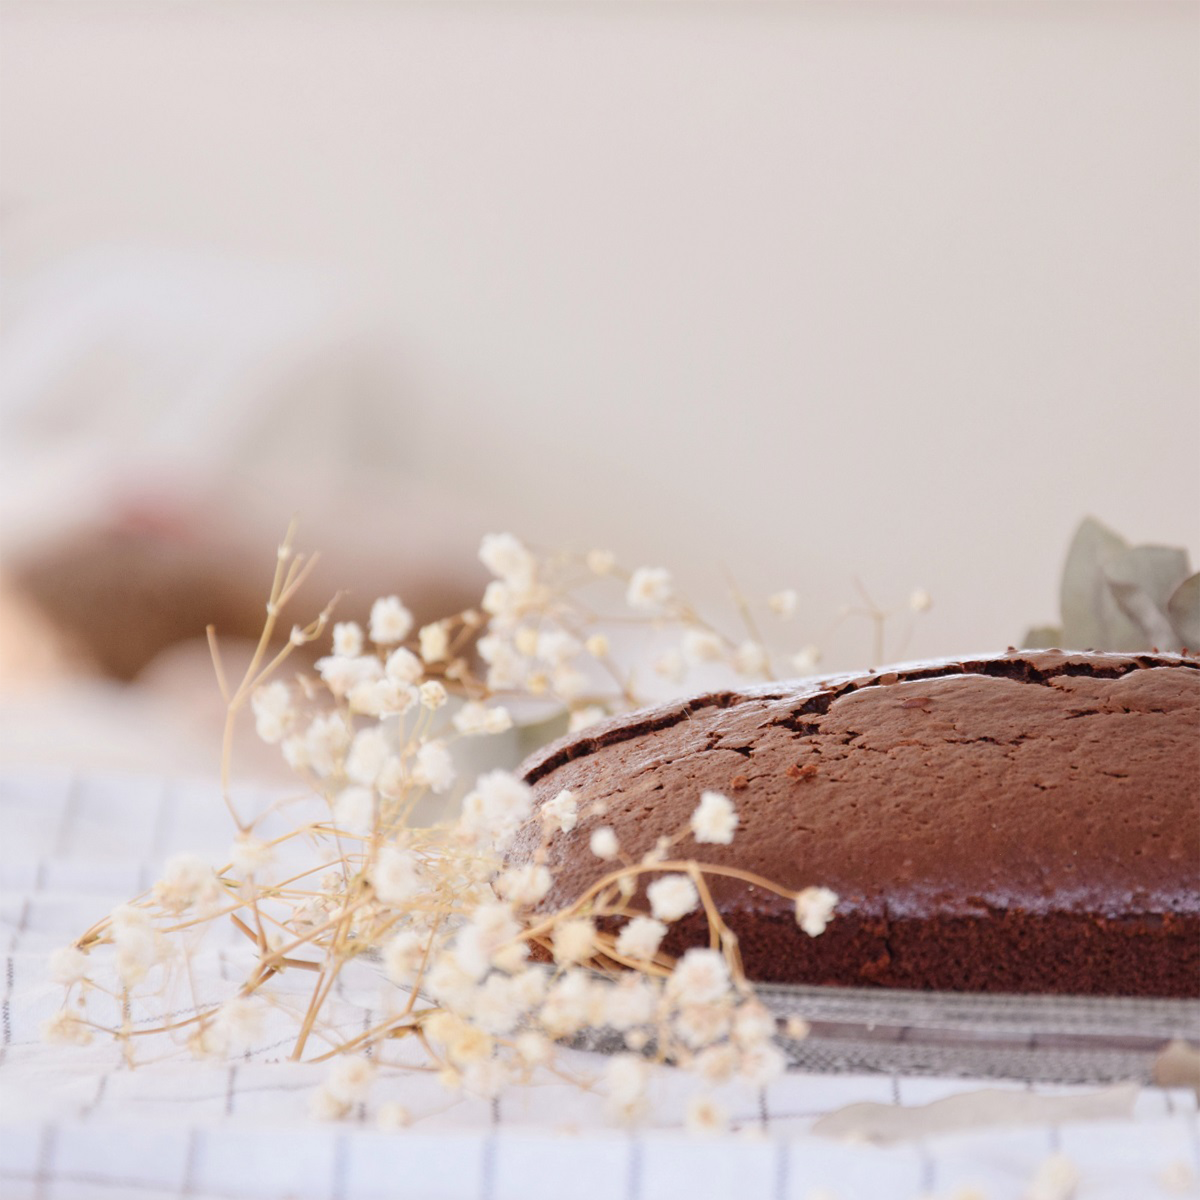 Dessert recipes for Valentine's Day: CBD chocolate cake